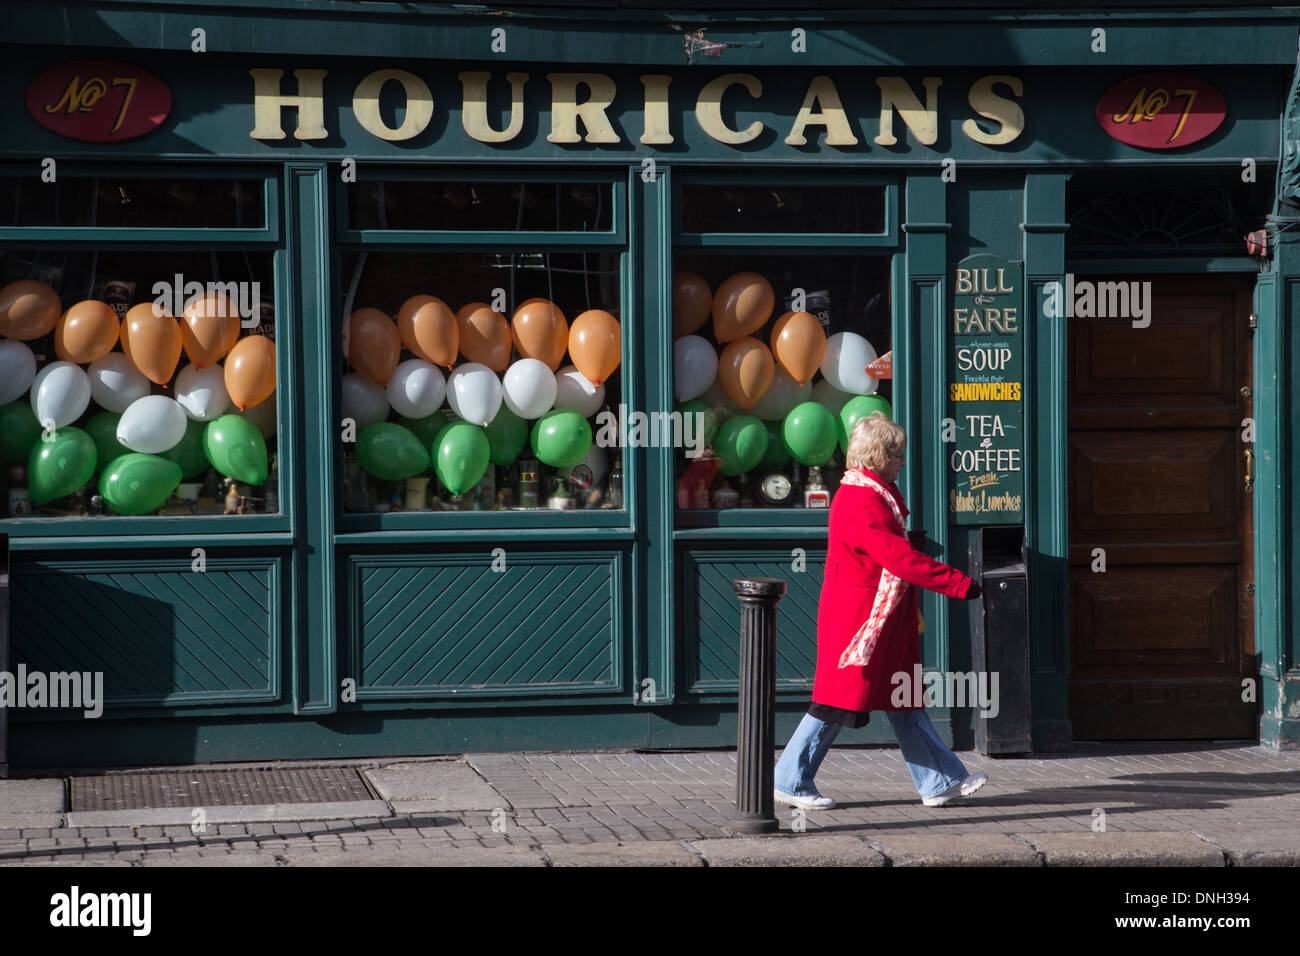 HOURICANS BAR, LOWER LESSON STREET, DUBLIN, IRELAND - Stock Image